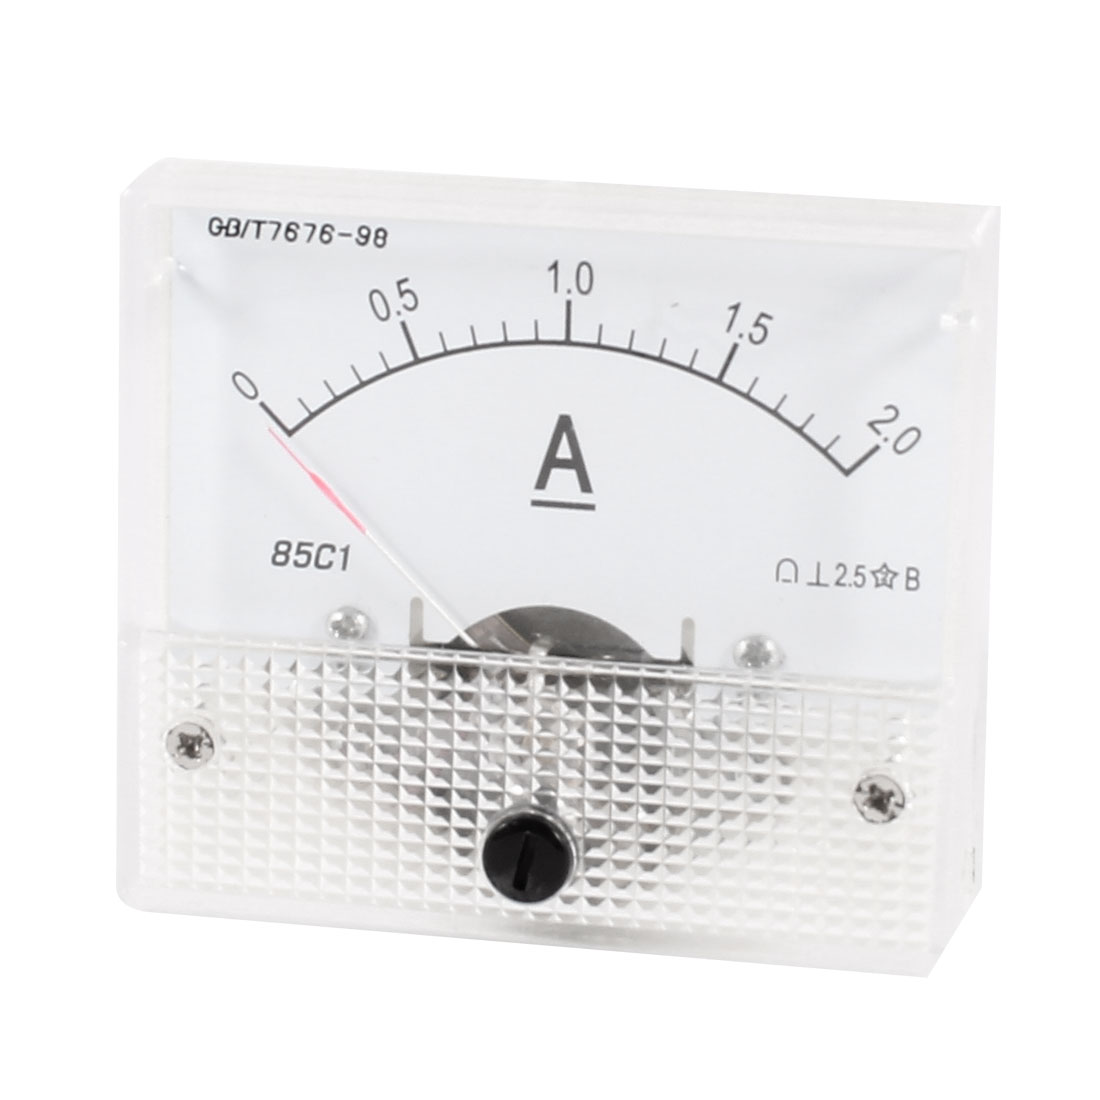 85C1 DC 0-2A Rectangle Analog Panel Ammeter Gauge